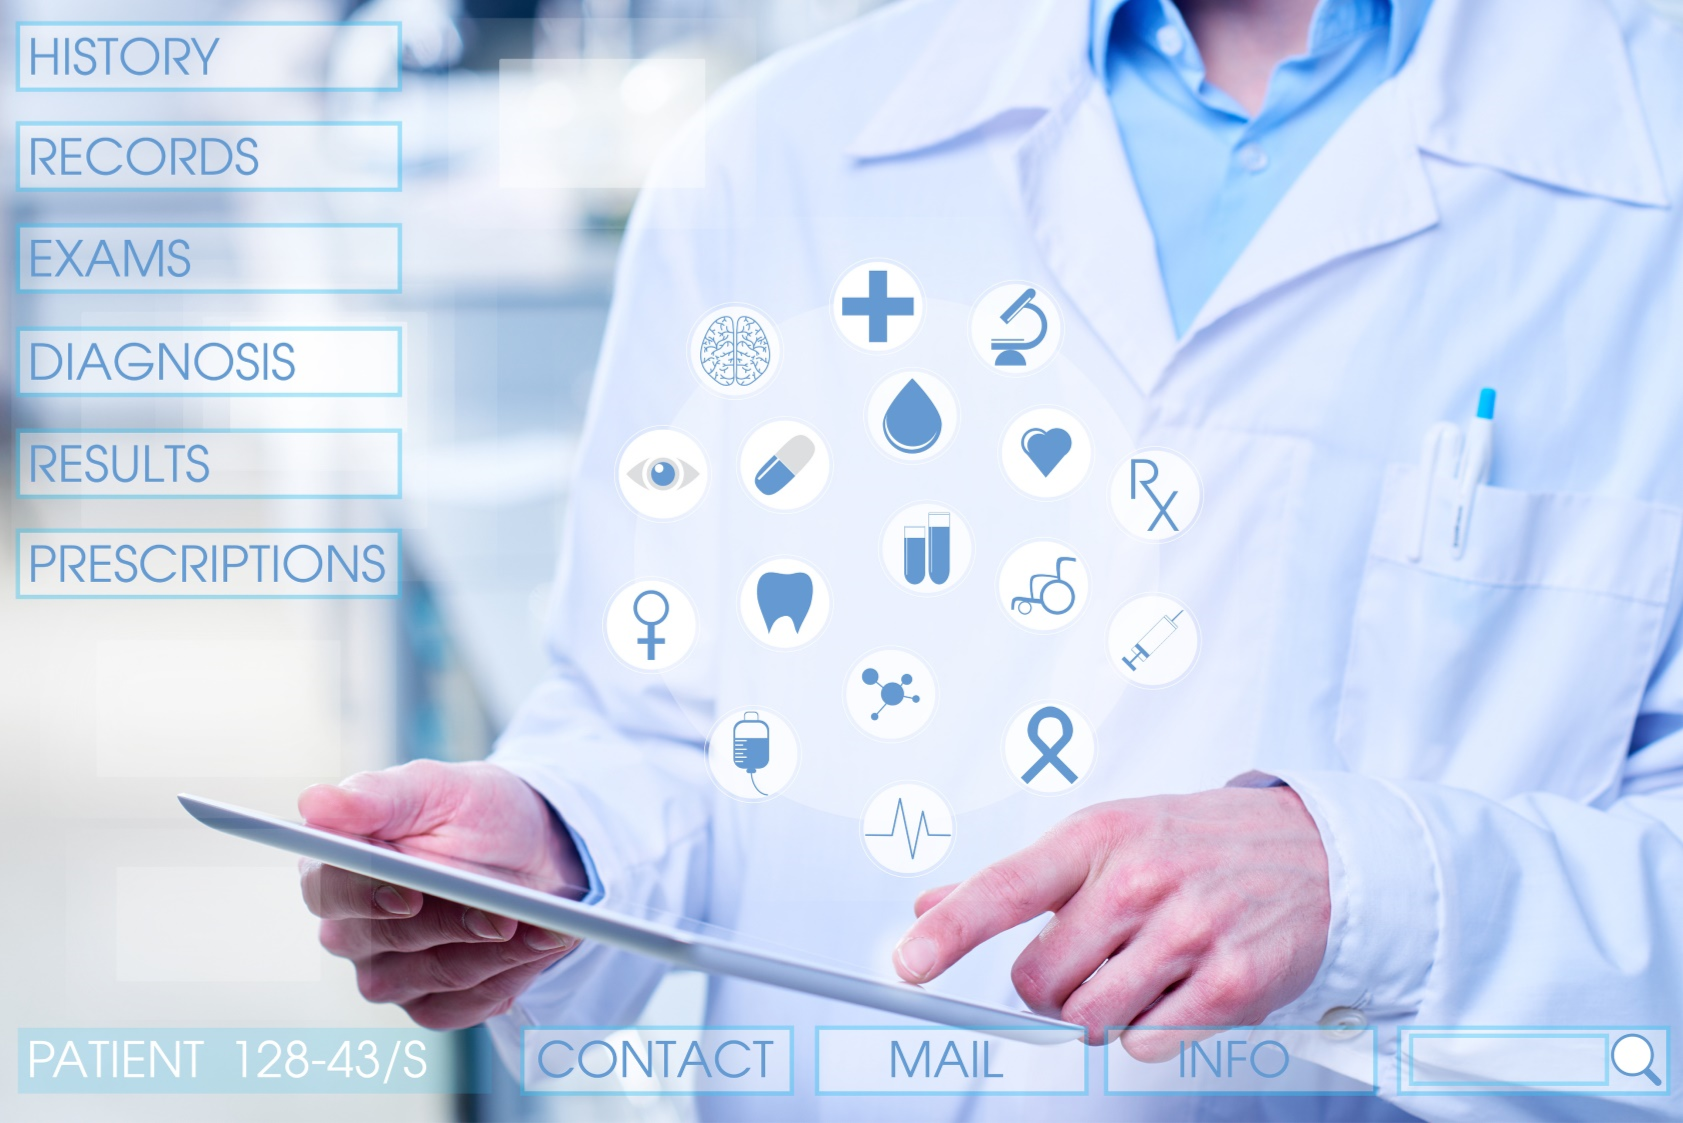 Tips for Amending Electronic Health Records